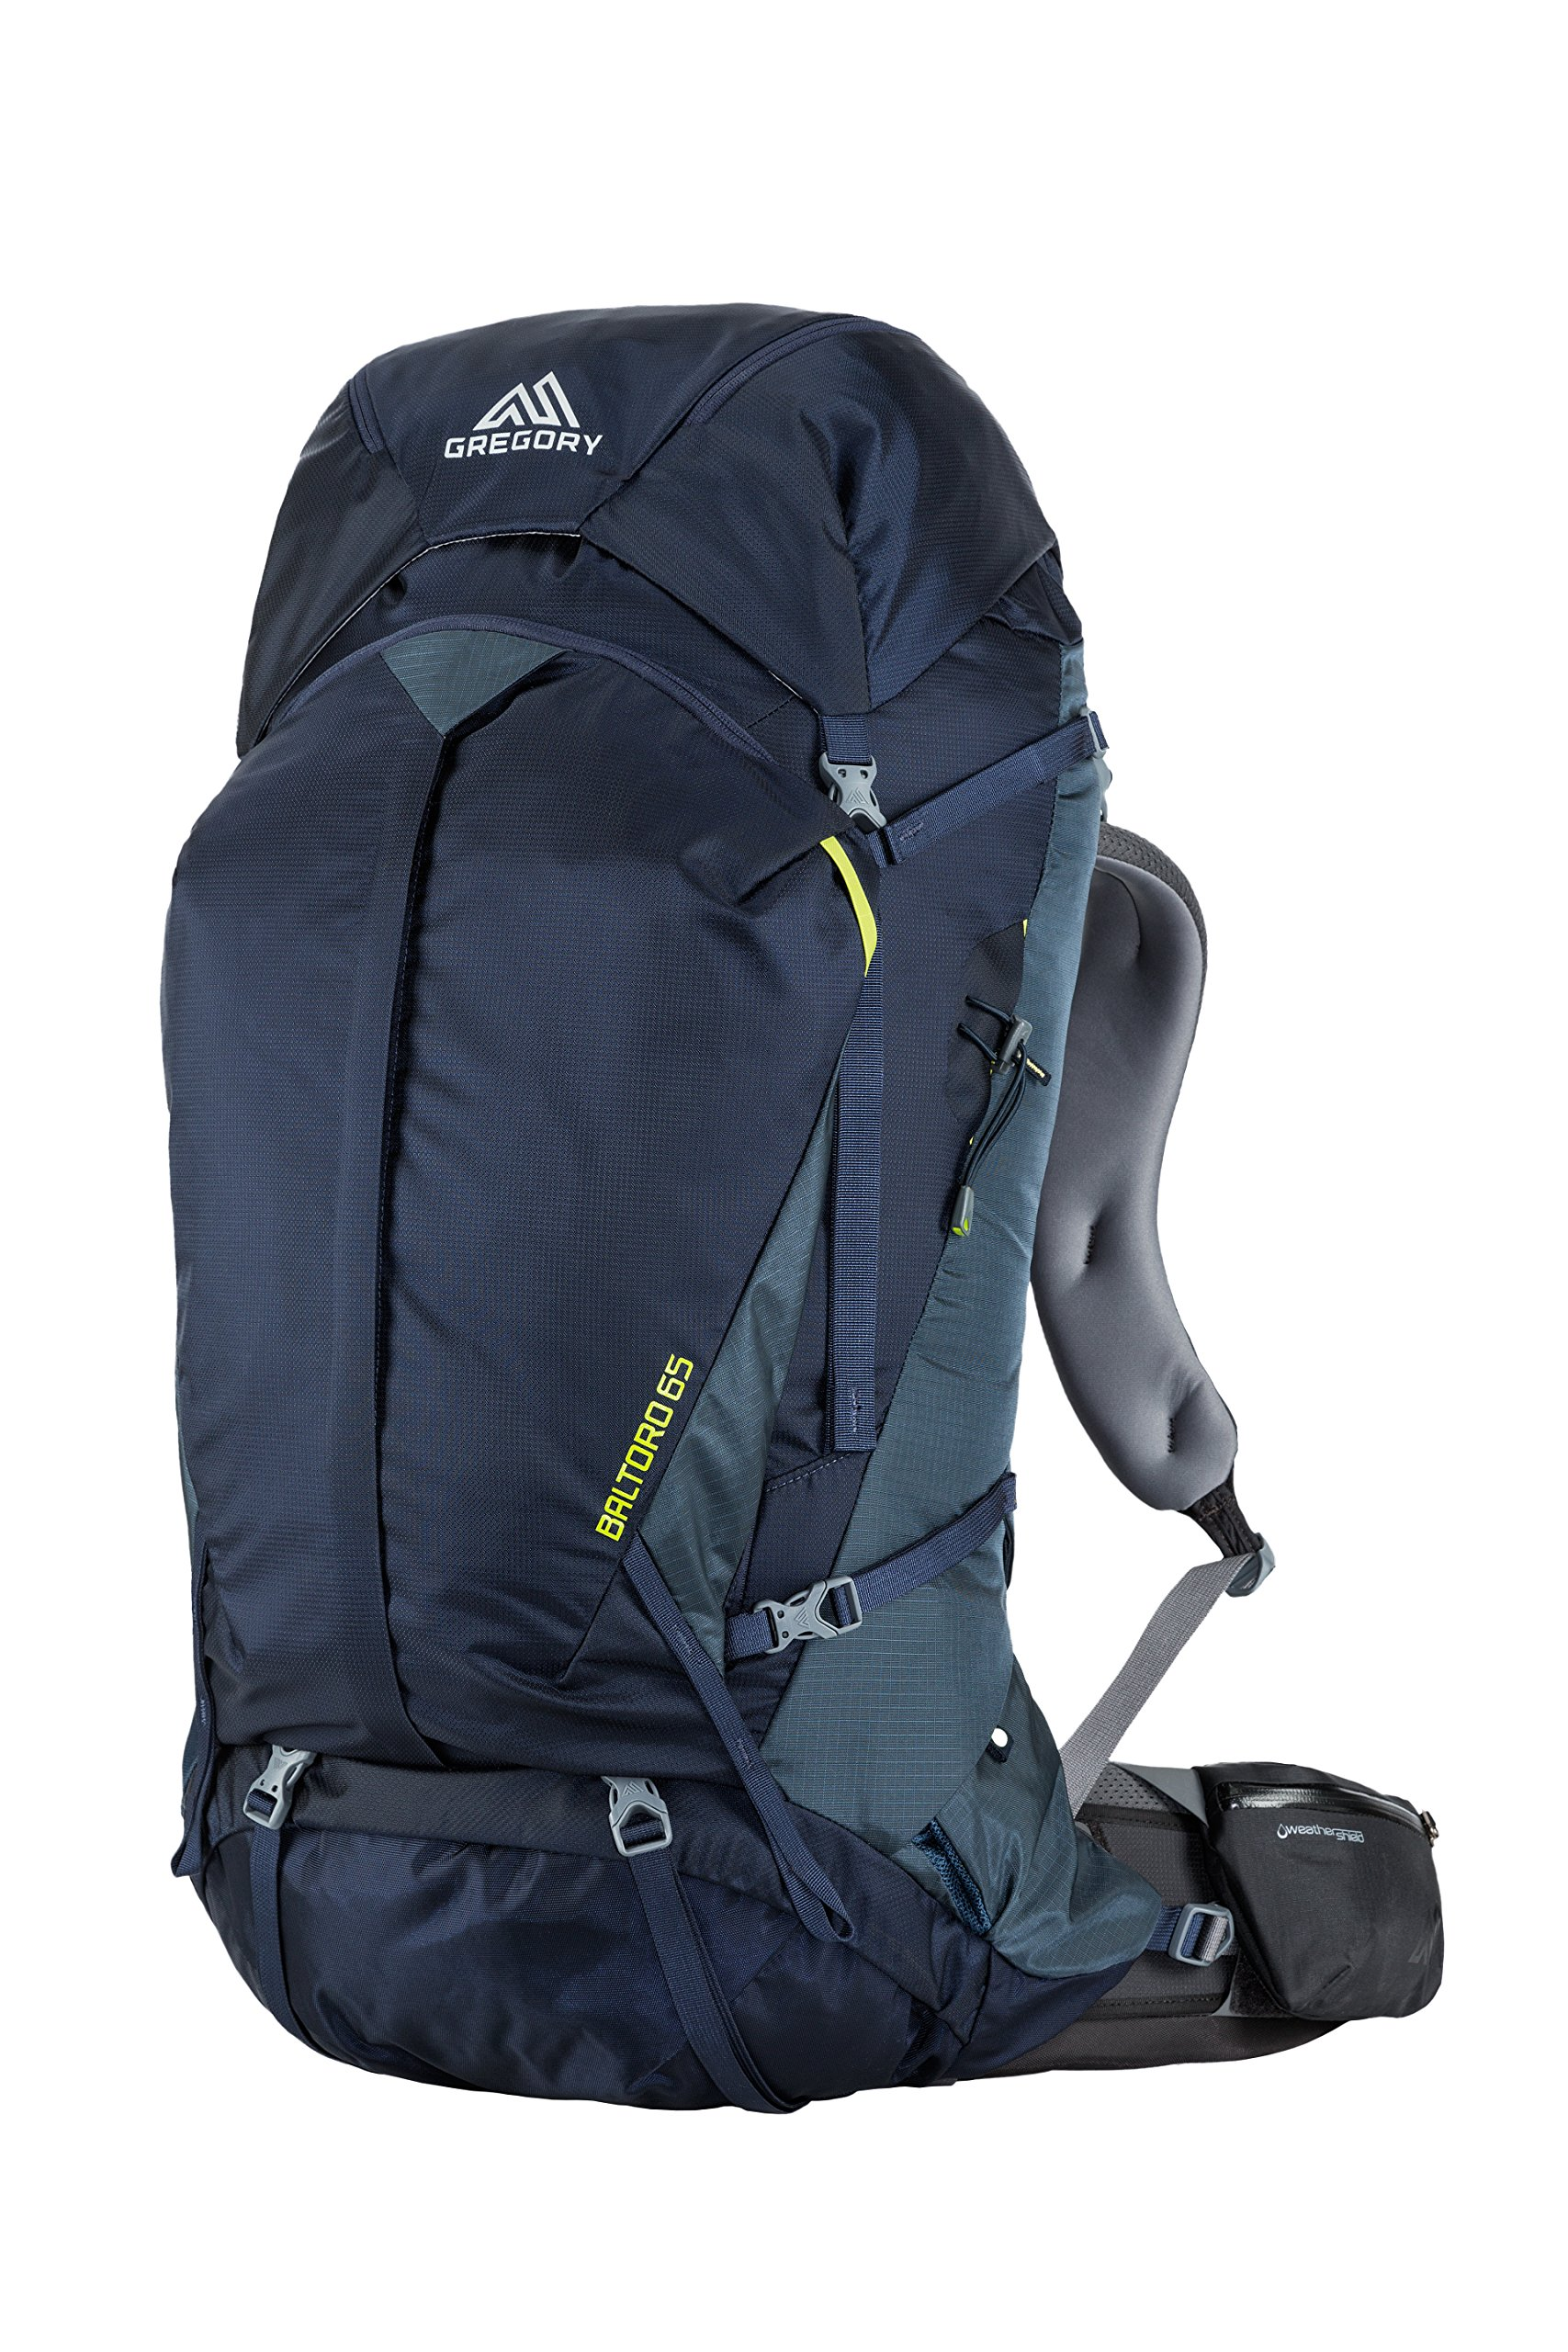 Gregory Mountain Products Baltoro 65 Liter Men's